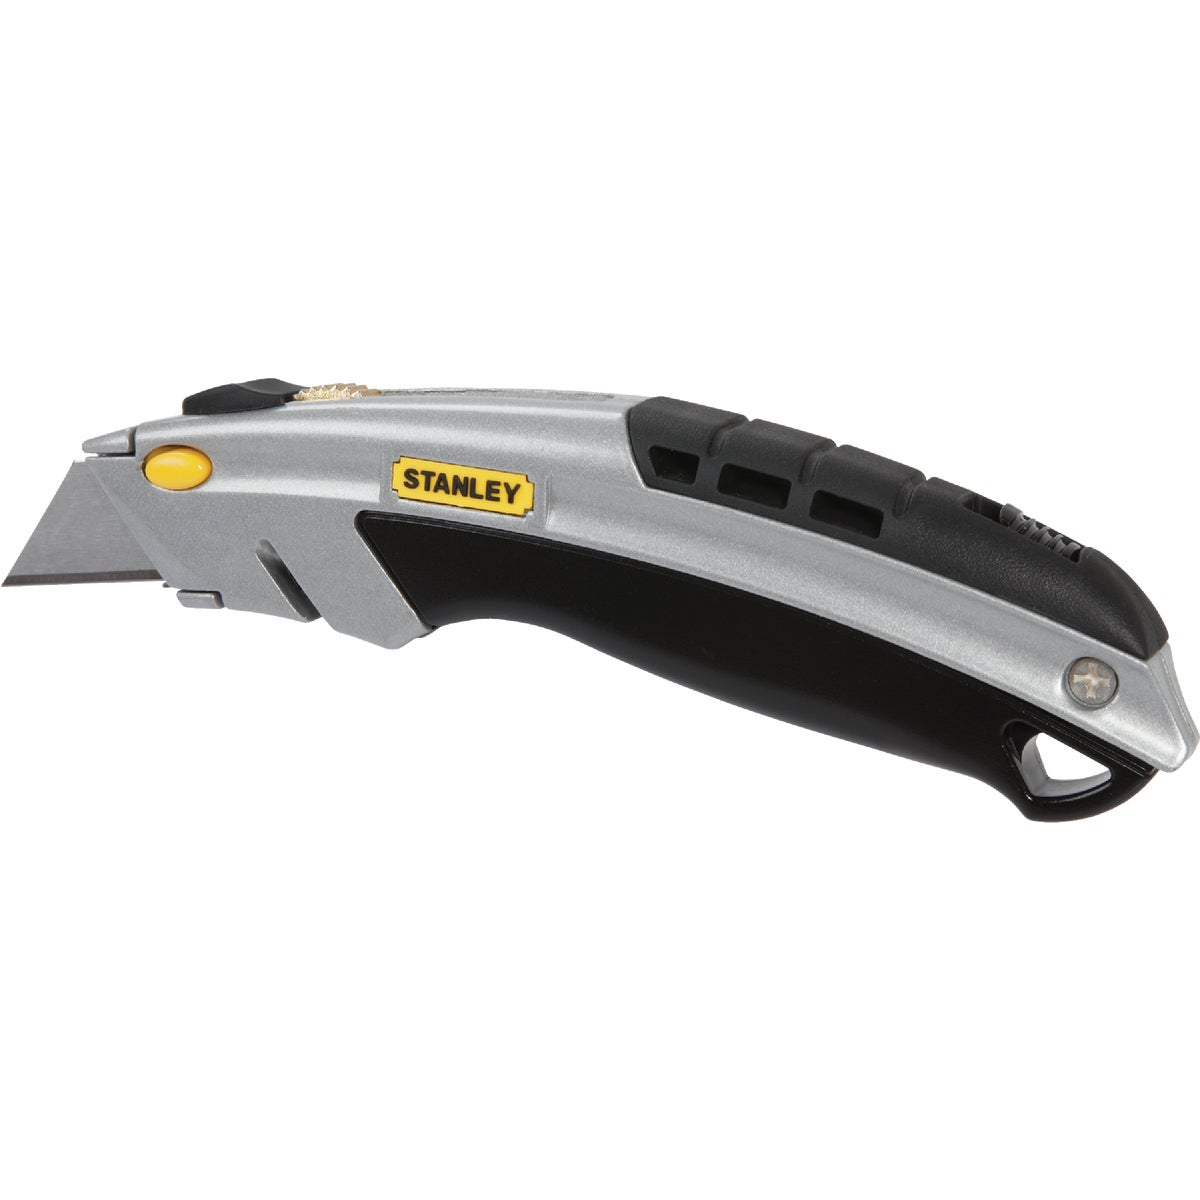 UTILITY KNIFE - 10-788 by Stanley Tools